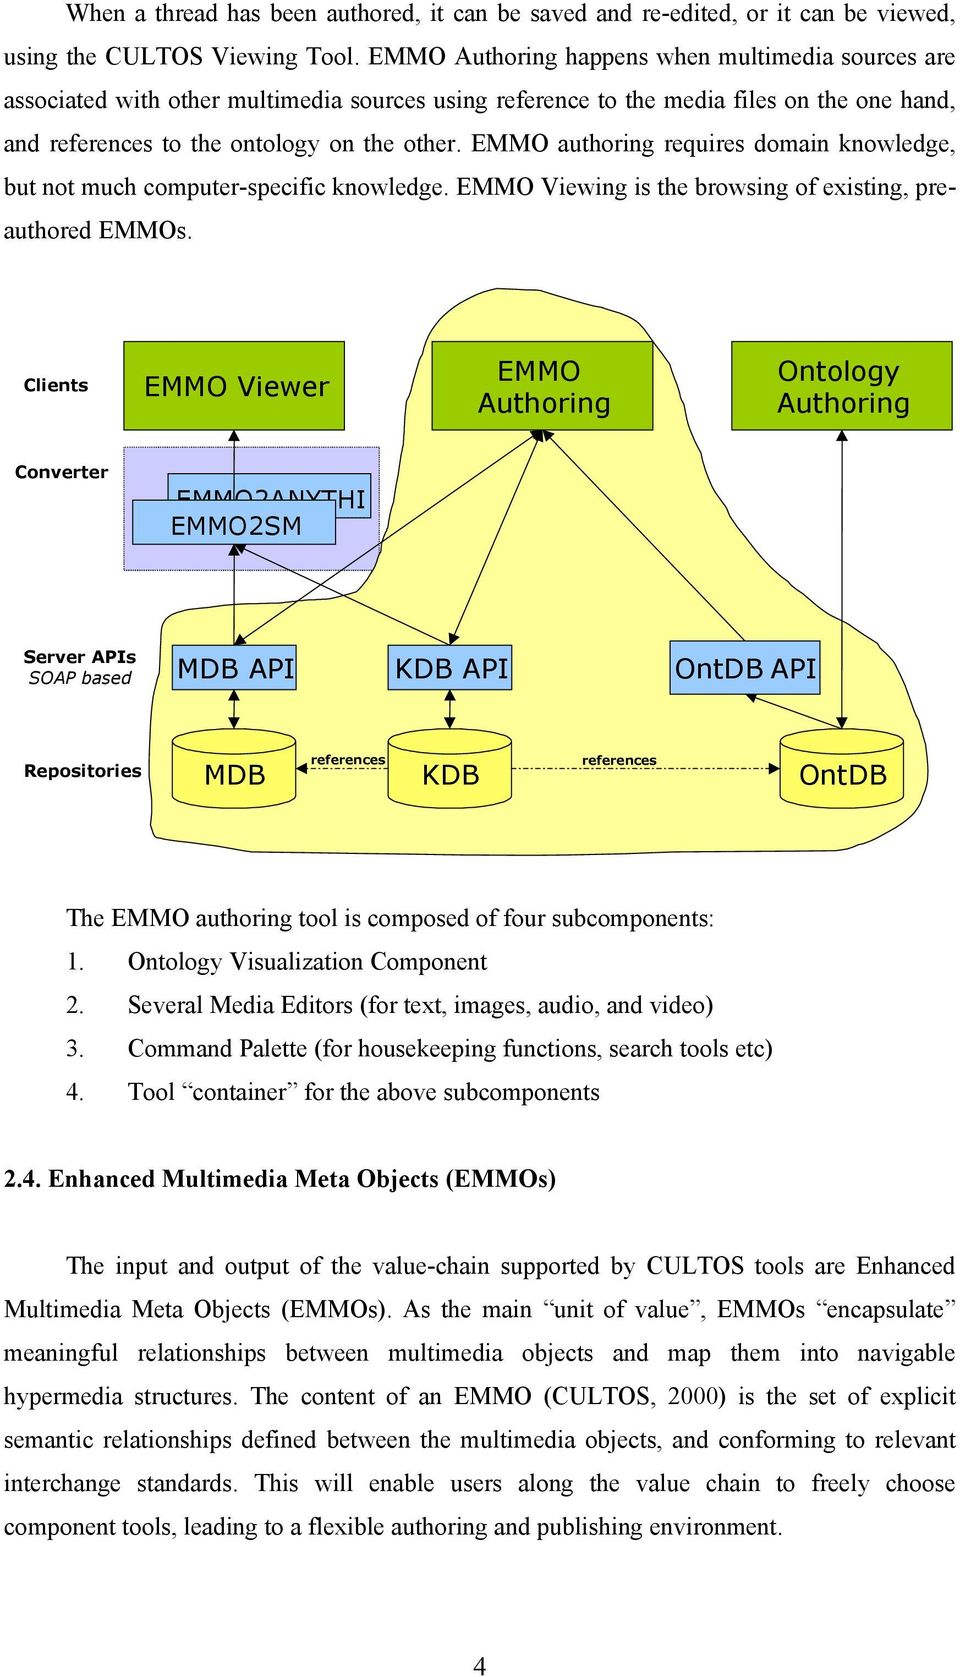 EMMO authoring requires domain knowledge, but not much computer-specific knowledge. EMMO Viewing is the browsing of existing, preauthored EMMOs.